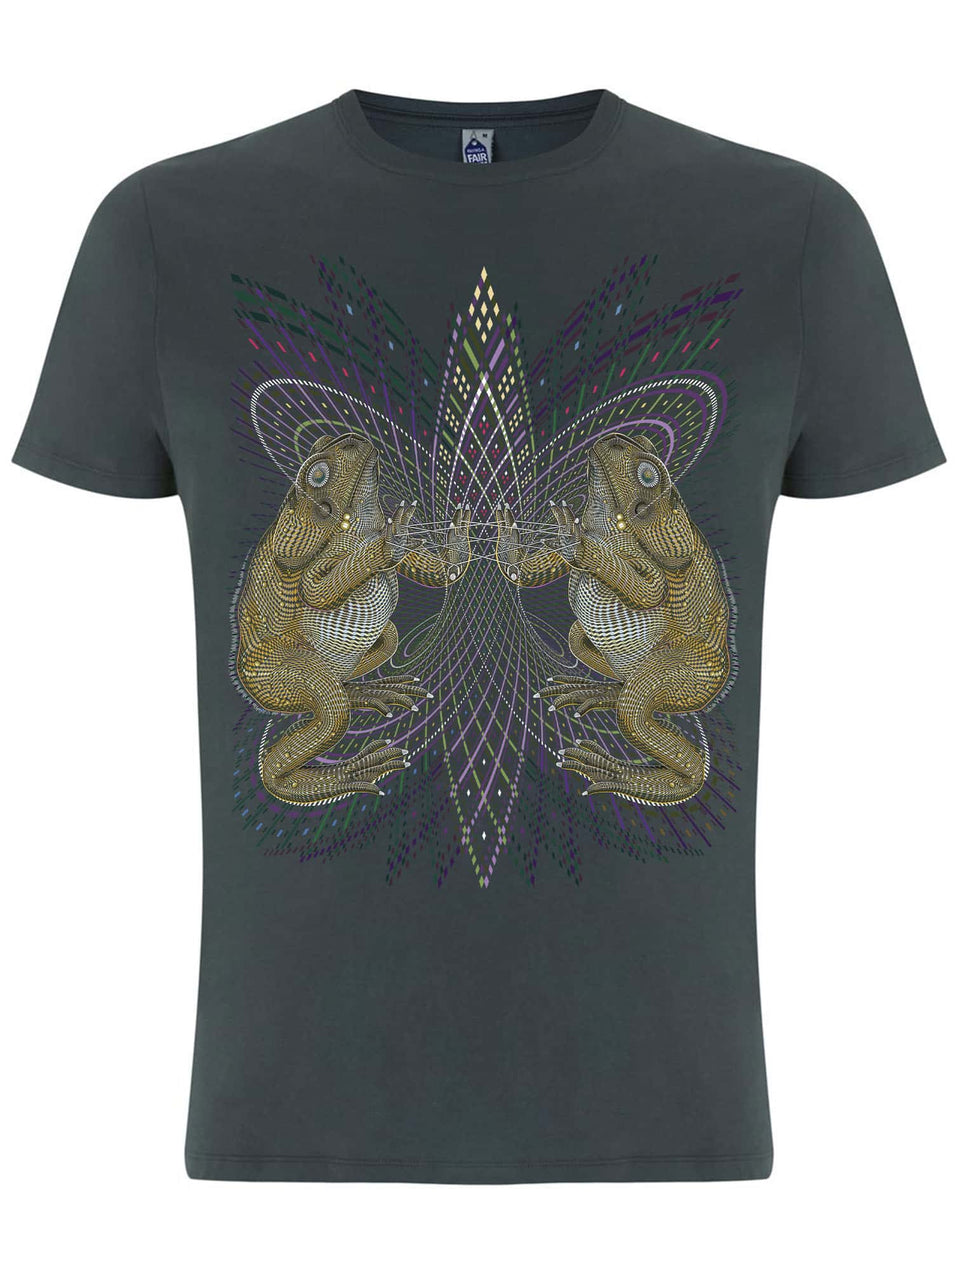 Bufo Alvarius Made To Order Men T-Shirt - Light Charcoal